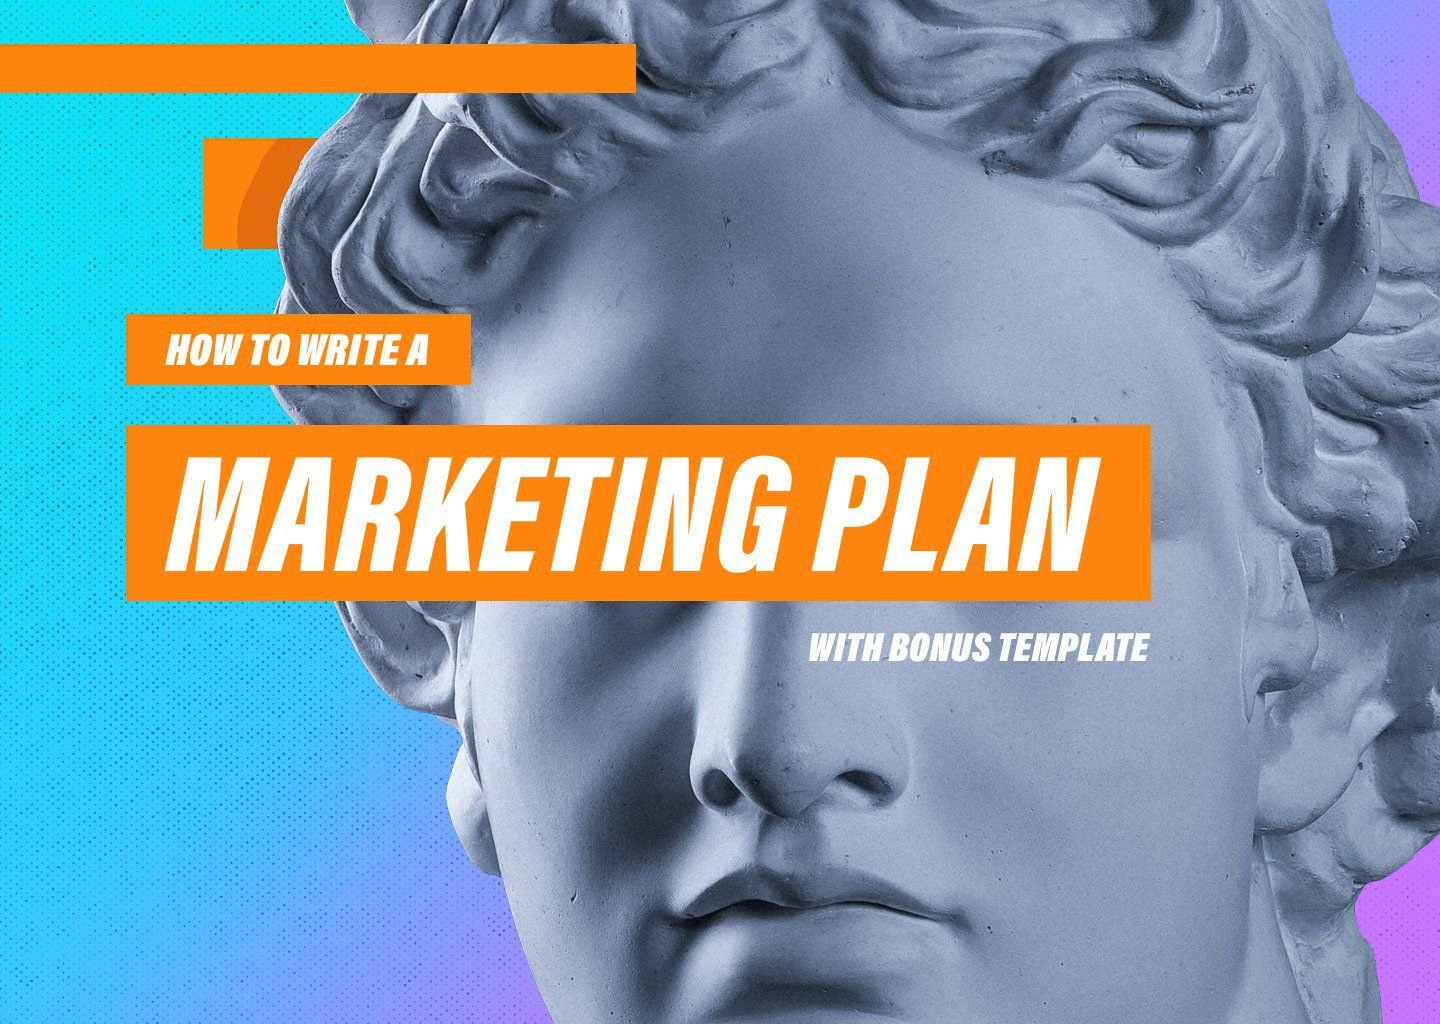 006 Sensational Product Launch Marketing Plan Template Free High Resolution Full